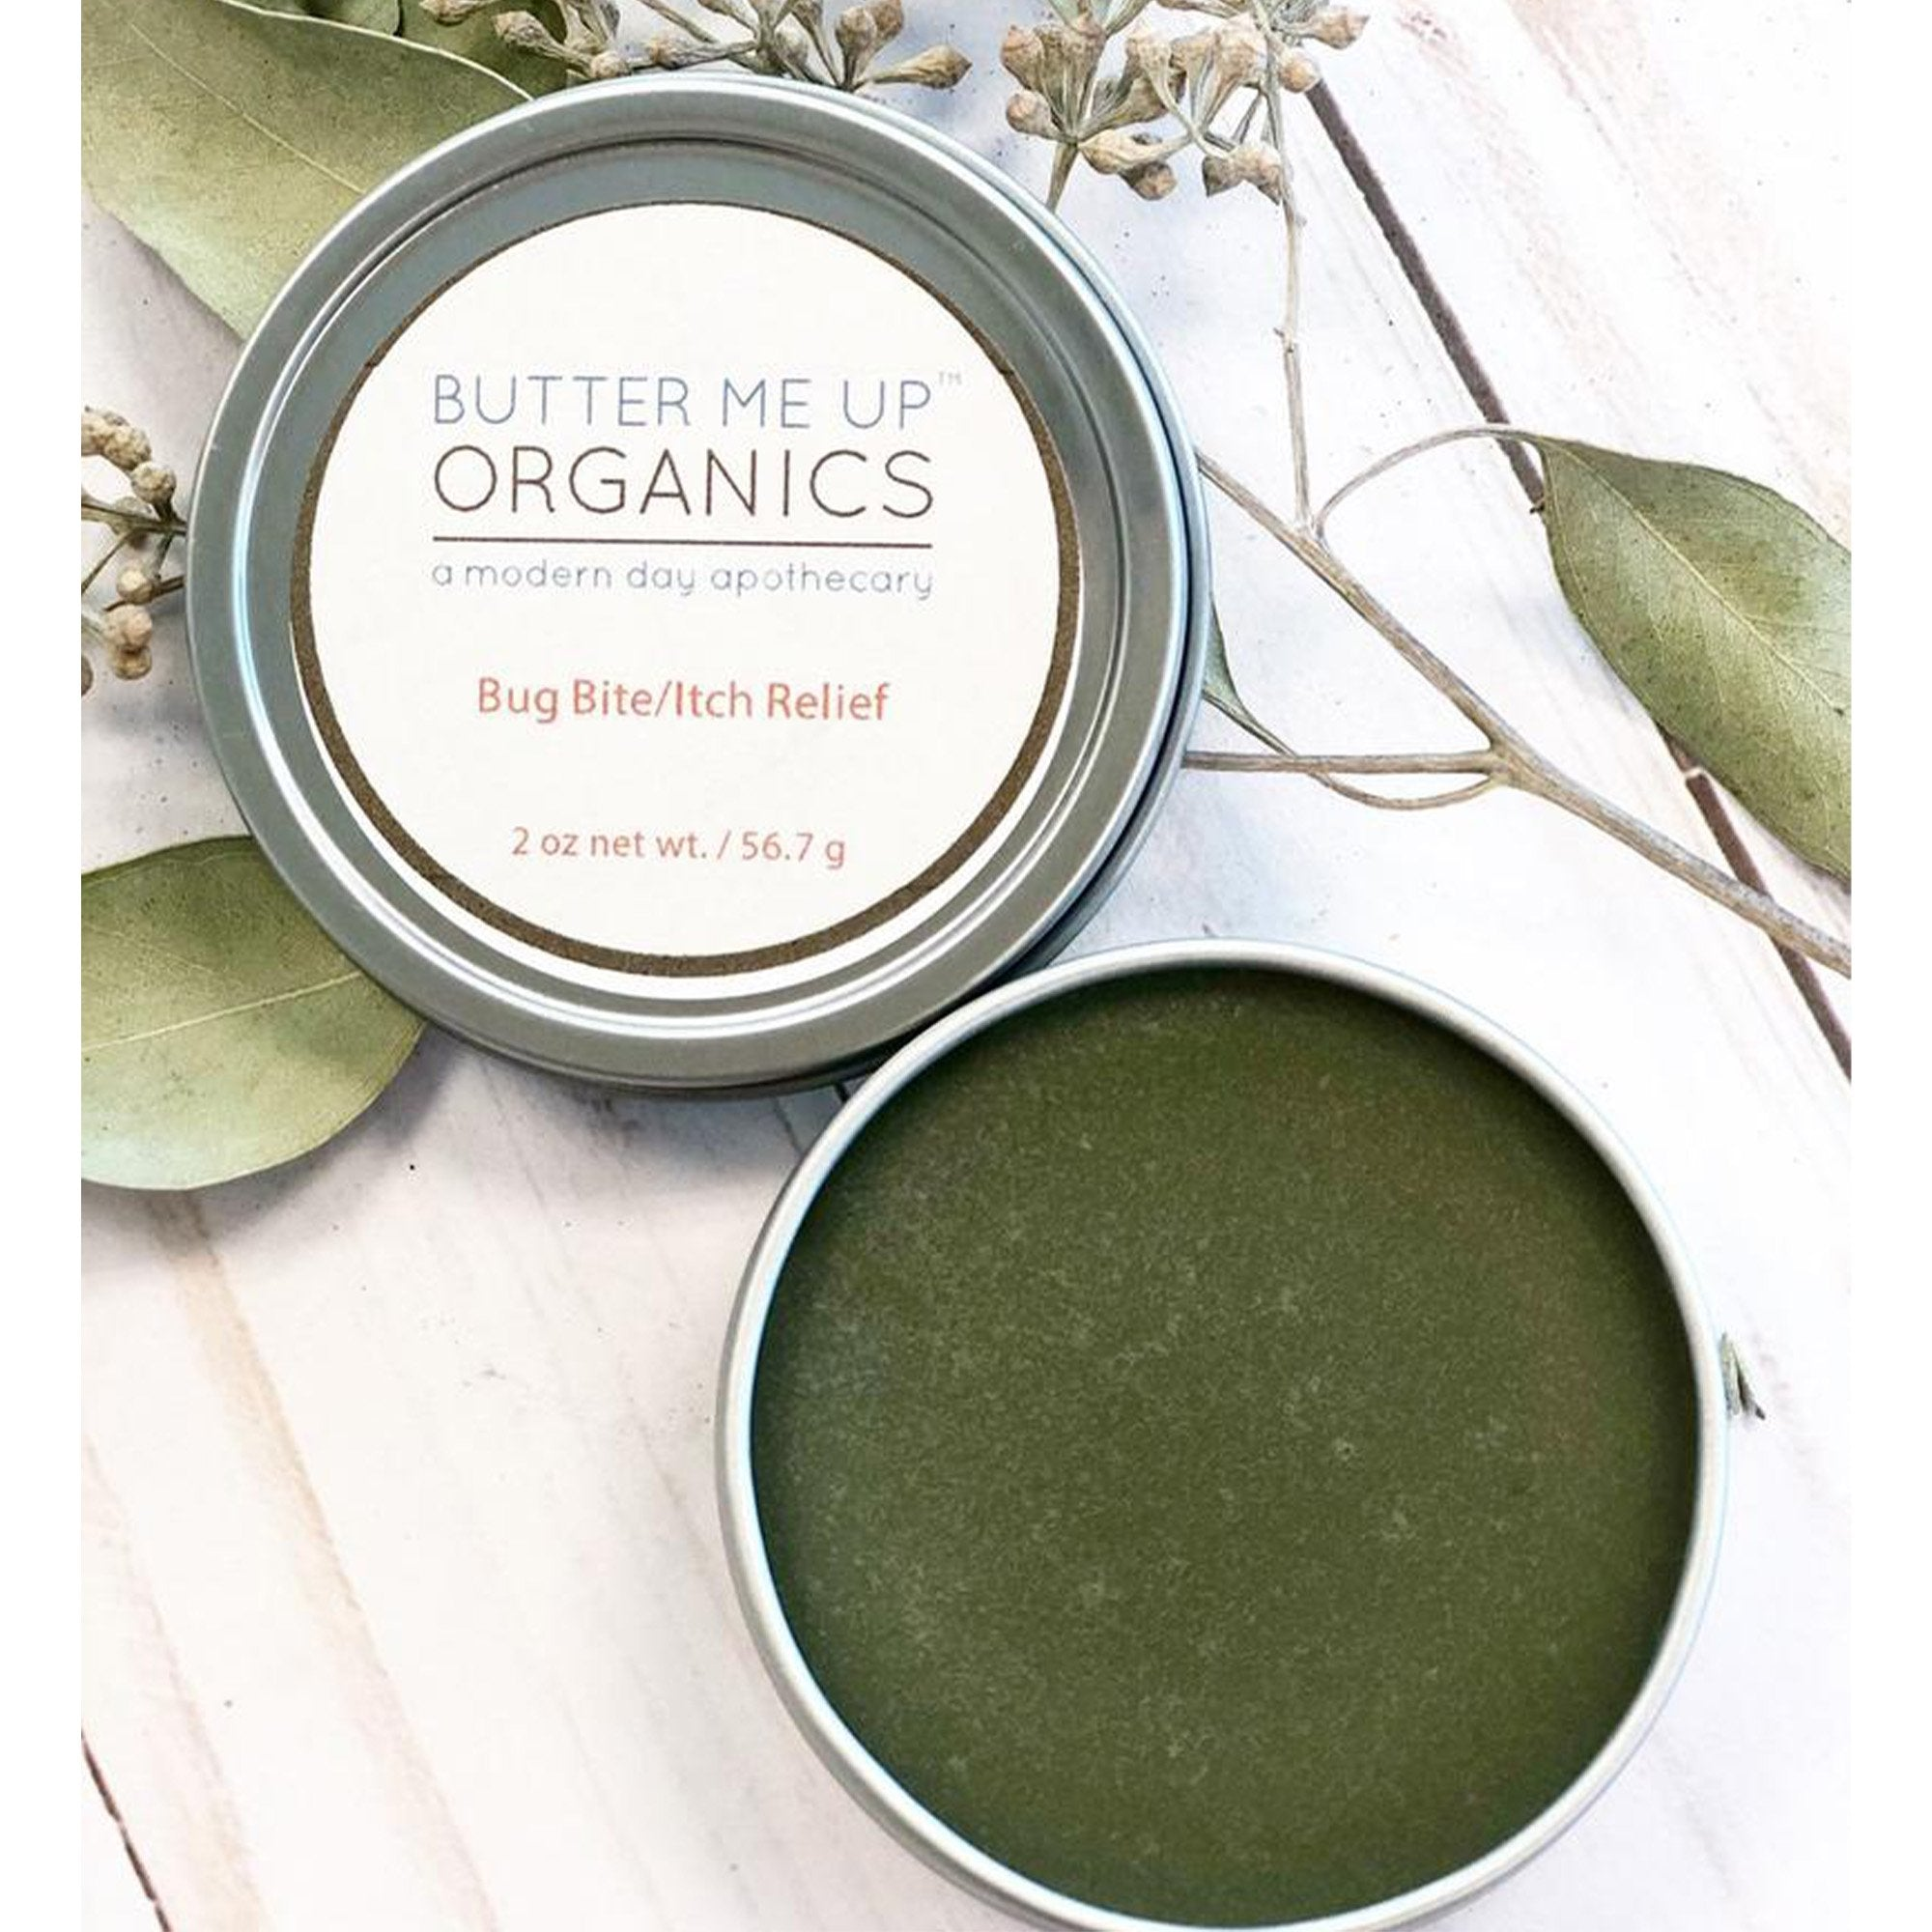 tin container and lid, green butter me up organics bug bite/itch relief, 2 oz, weight 56.7 g